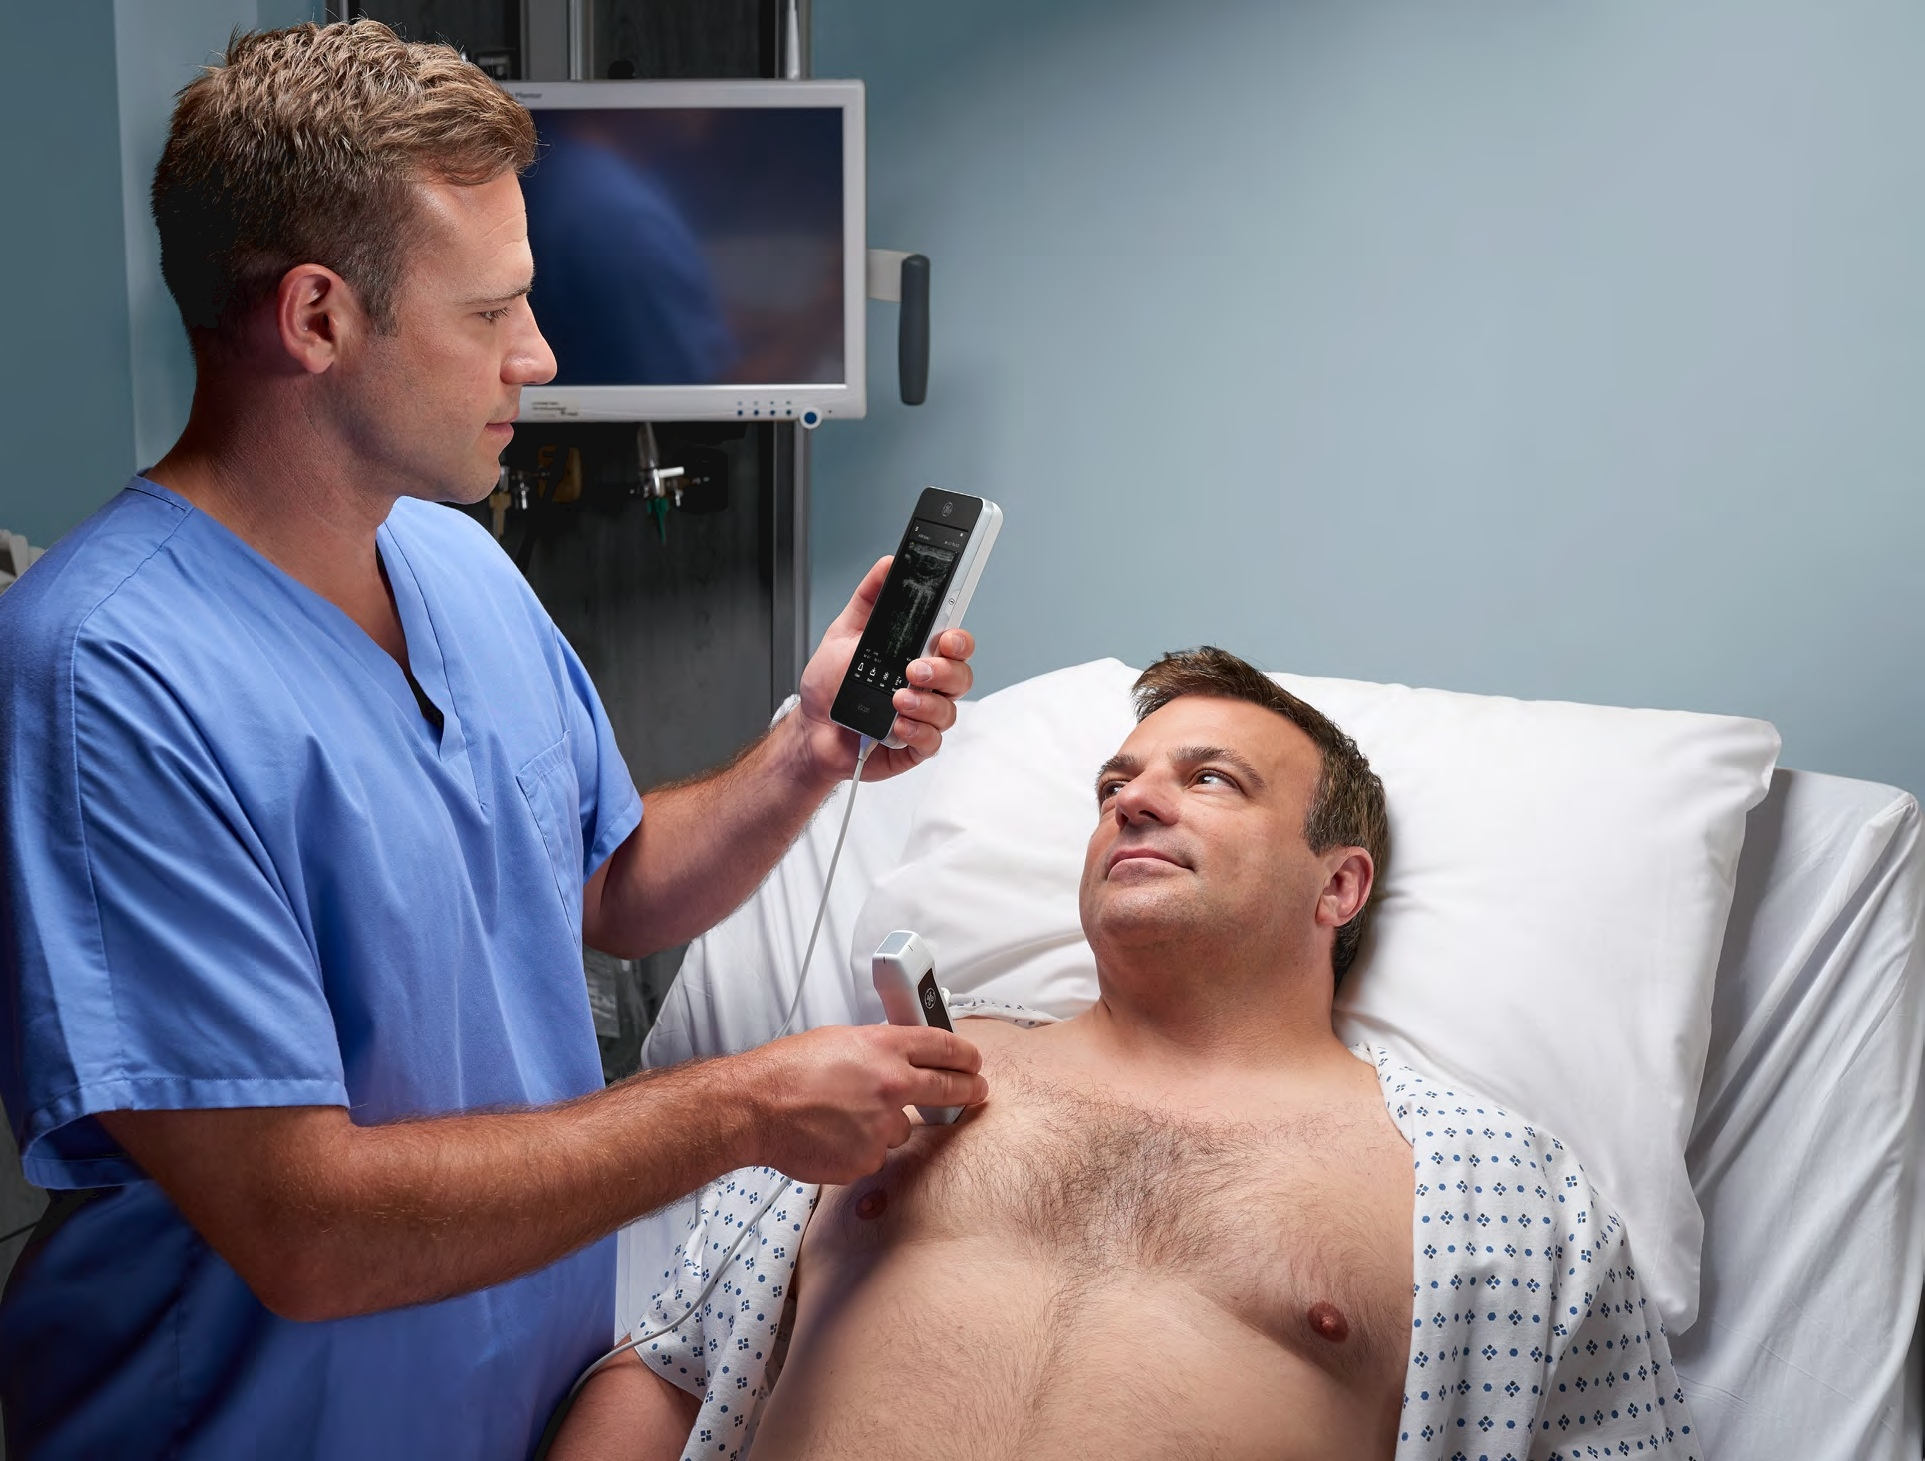 Self Photos / Files - Vscan Extend doctor and patient